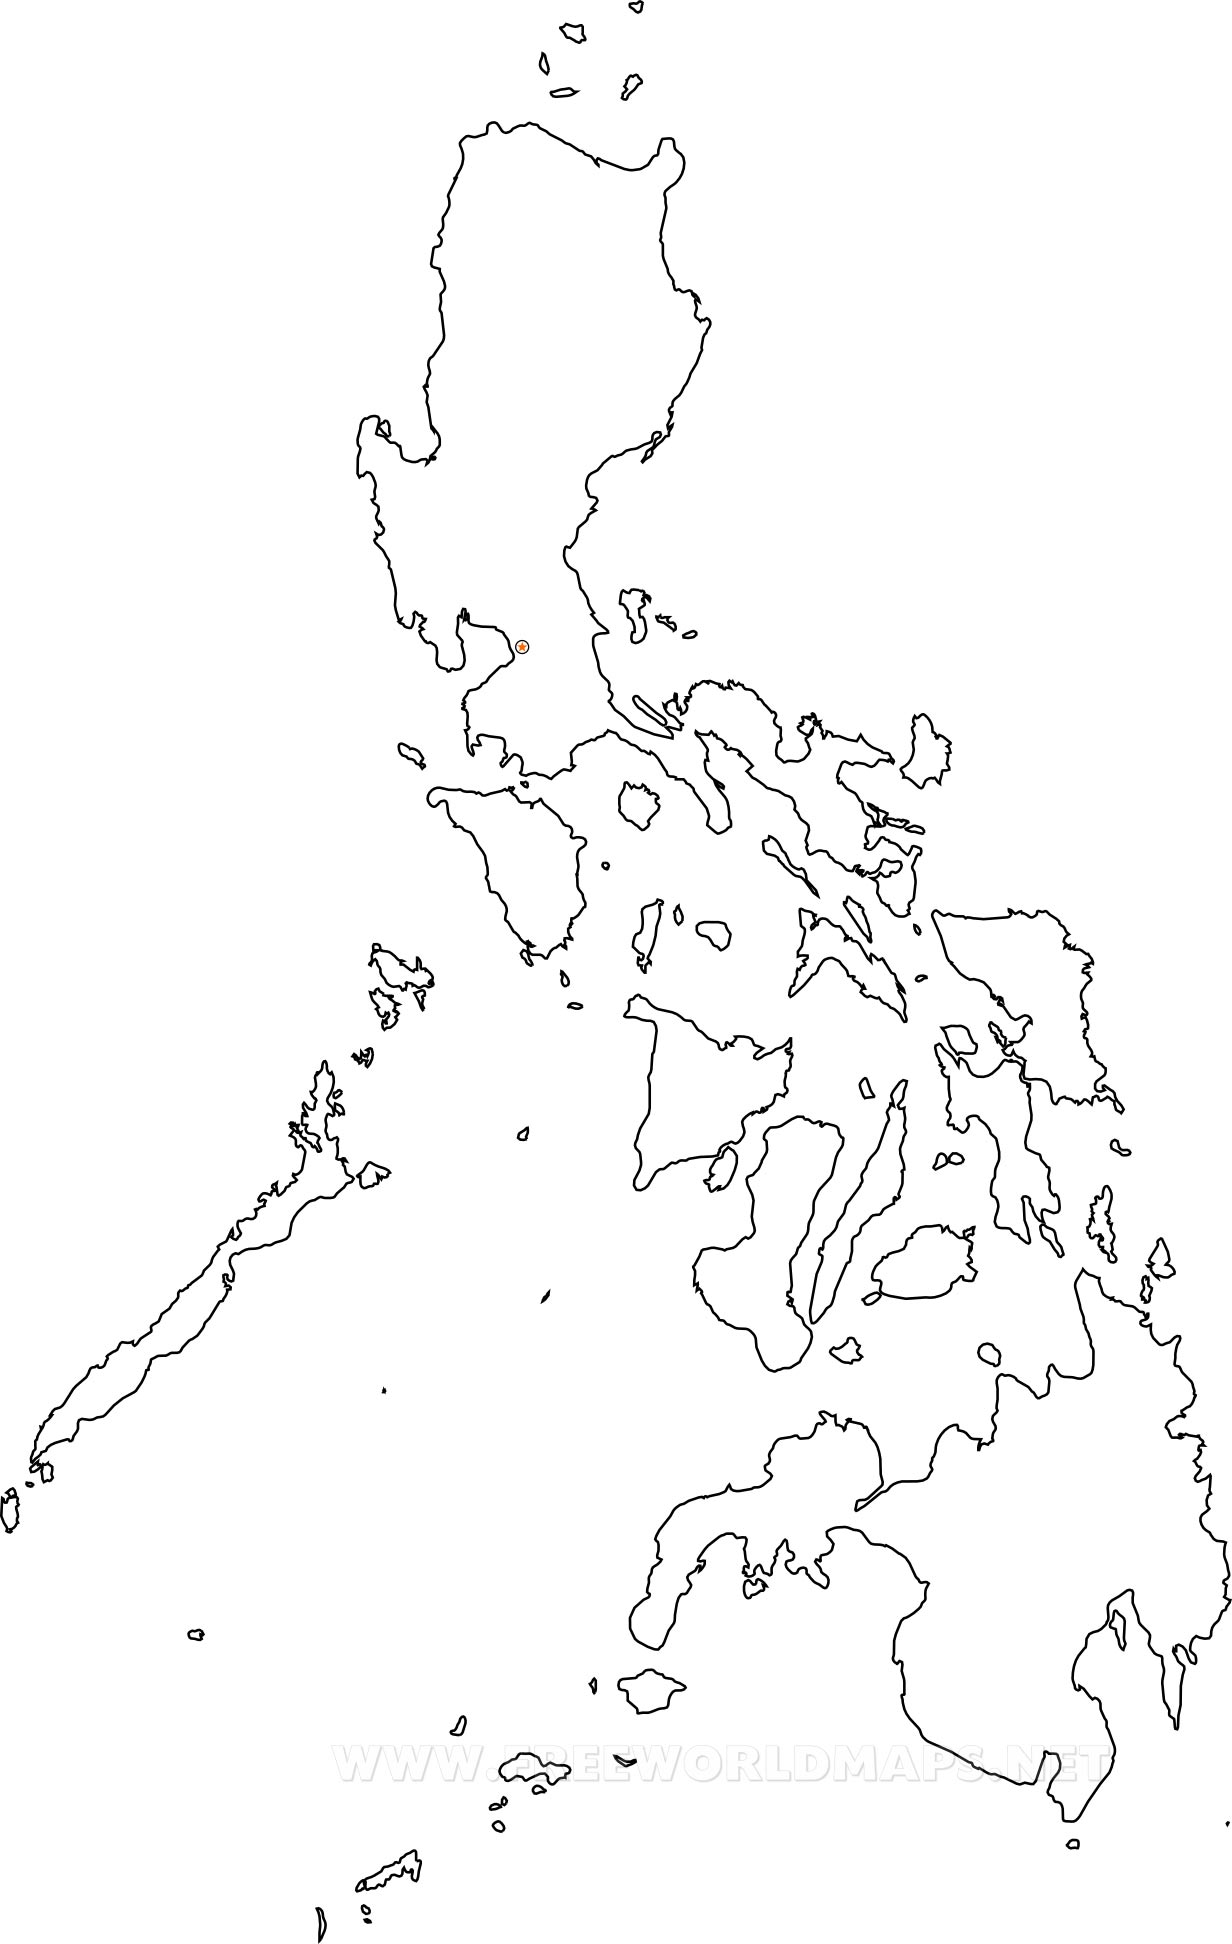 Image of: Philippines Maps